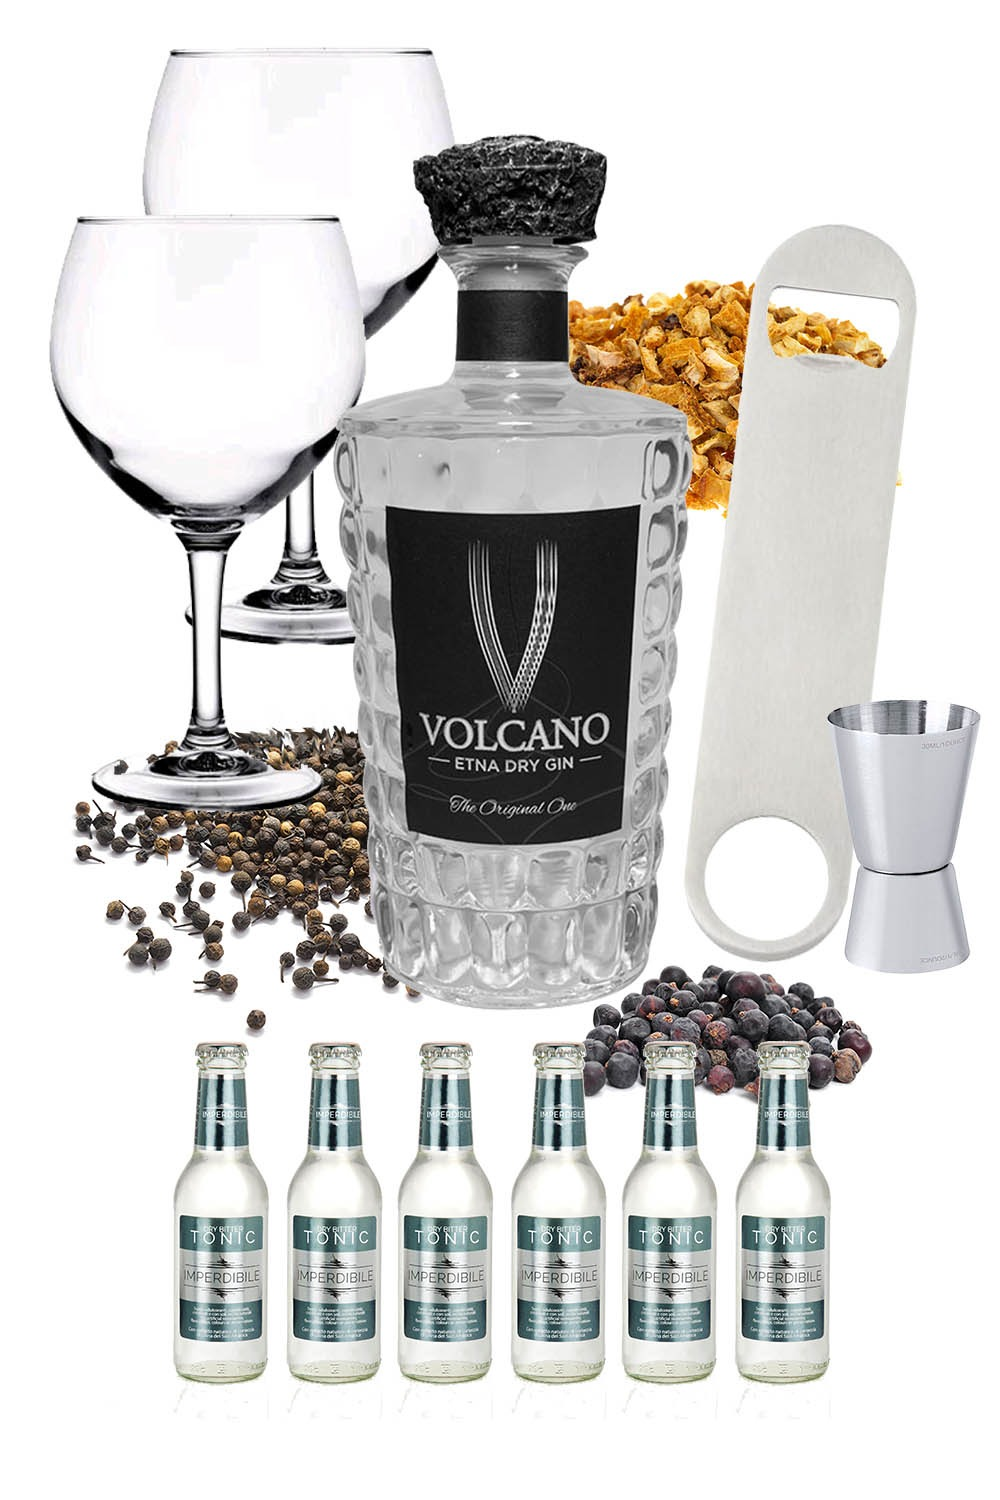 Volcano – Mission Ginpossible